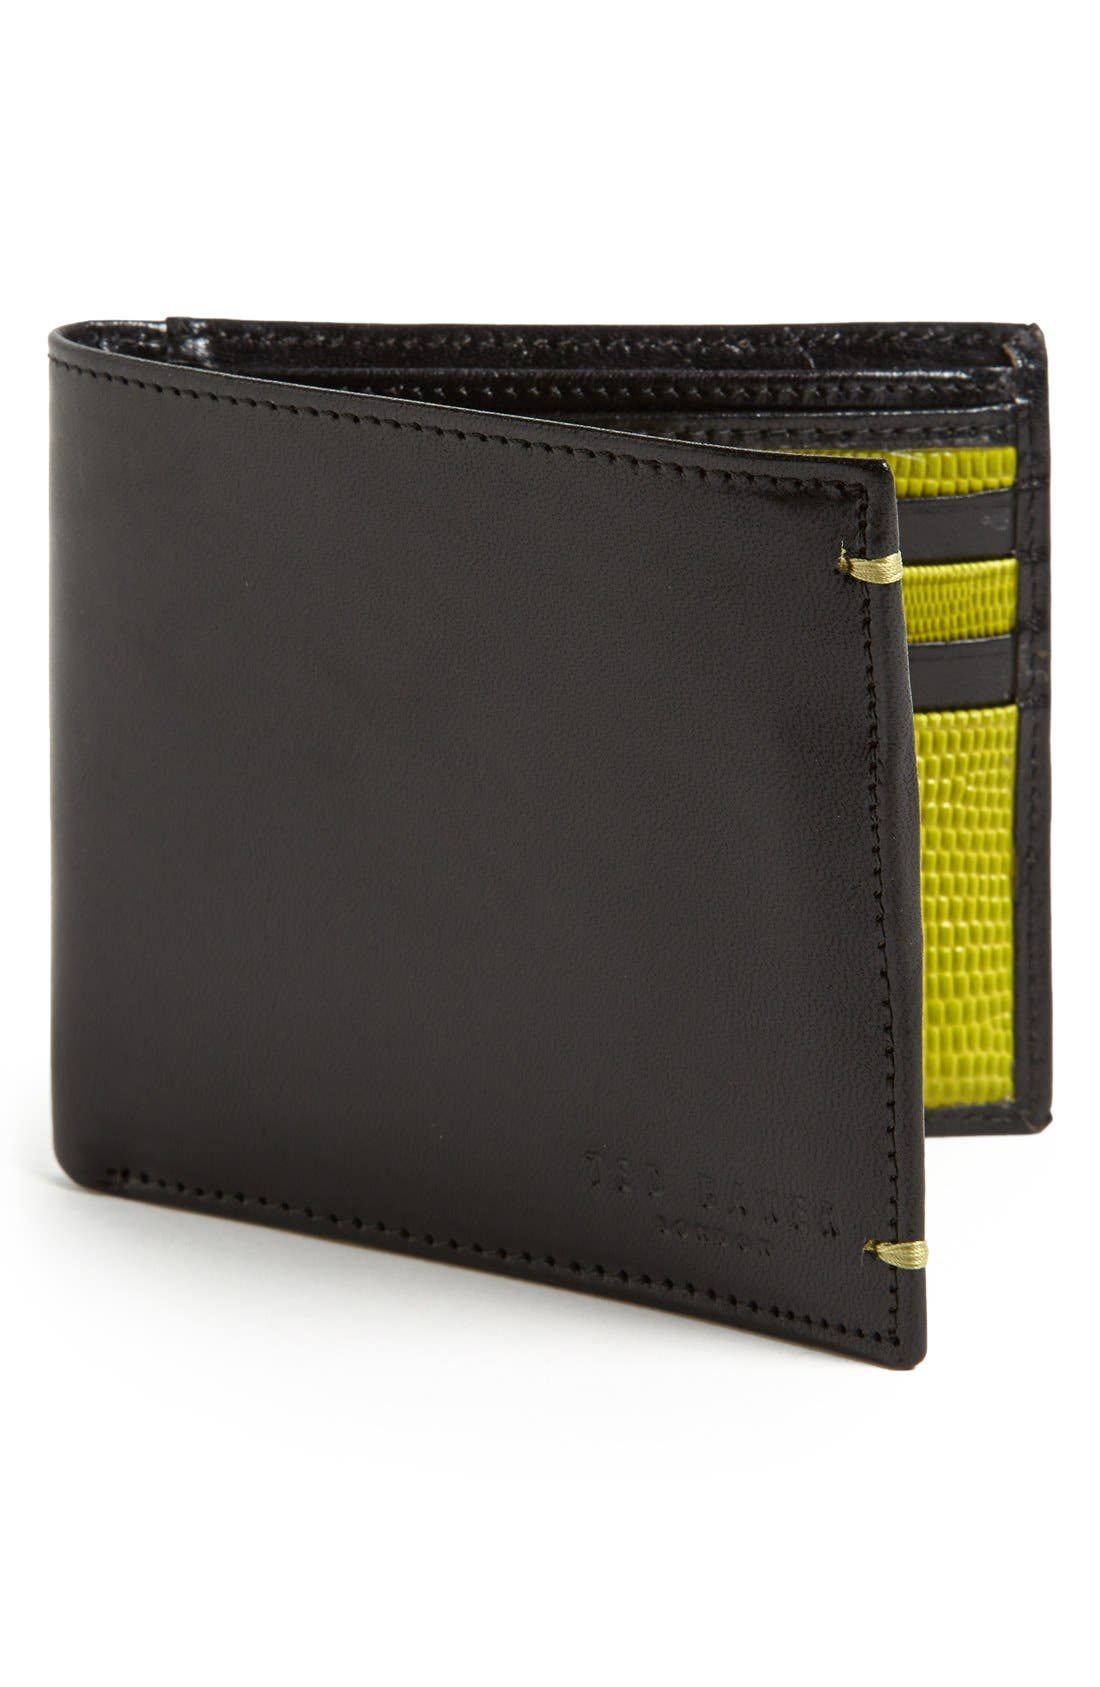 Alternate Image 1 Selected - Ted Baker London Leather Bifold Wallet